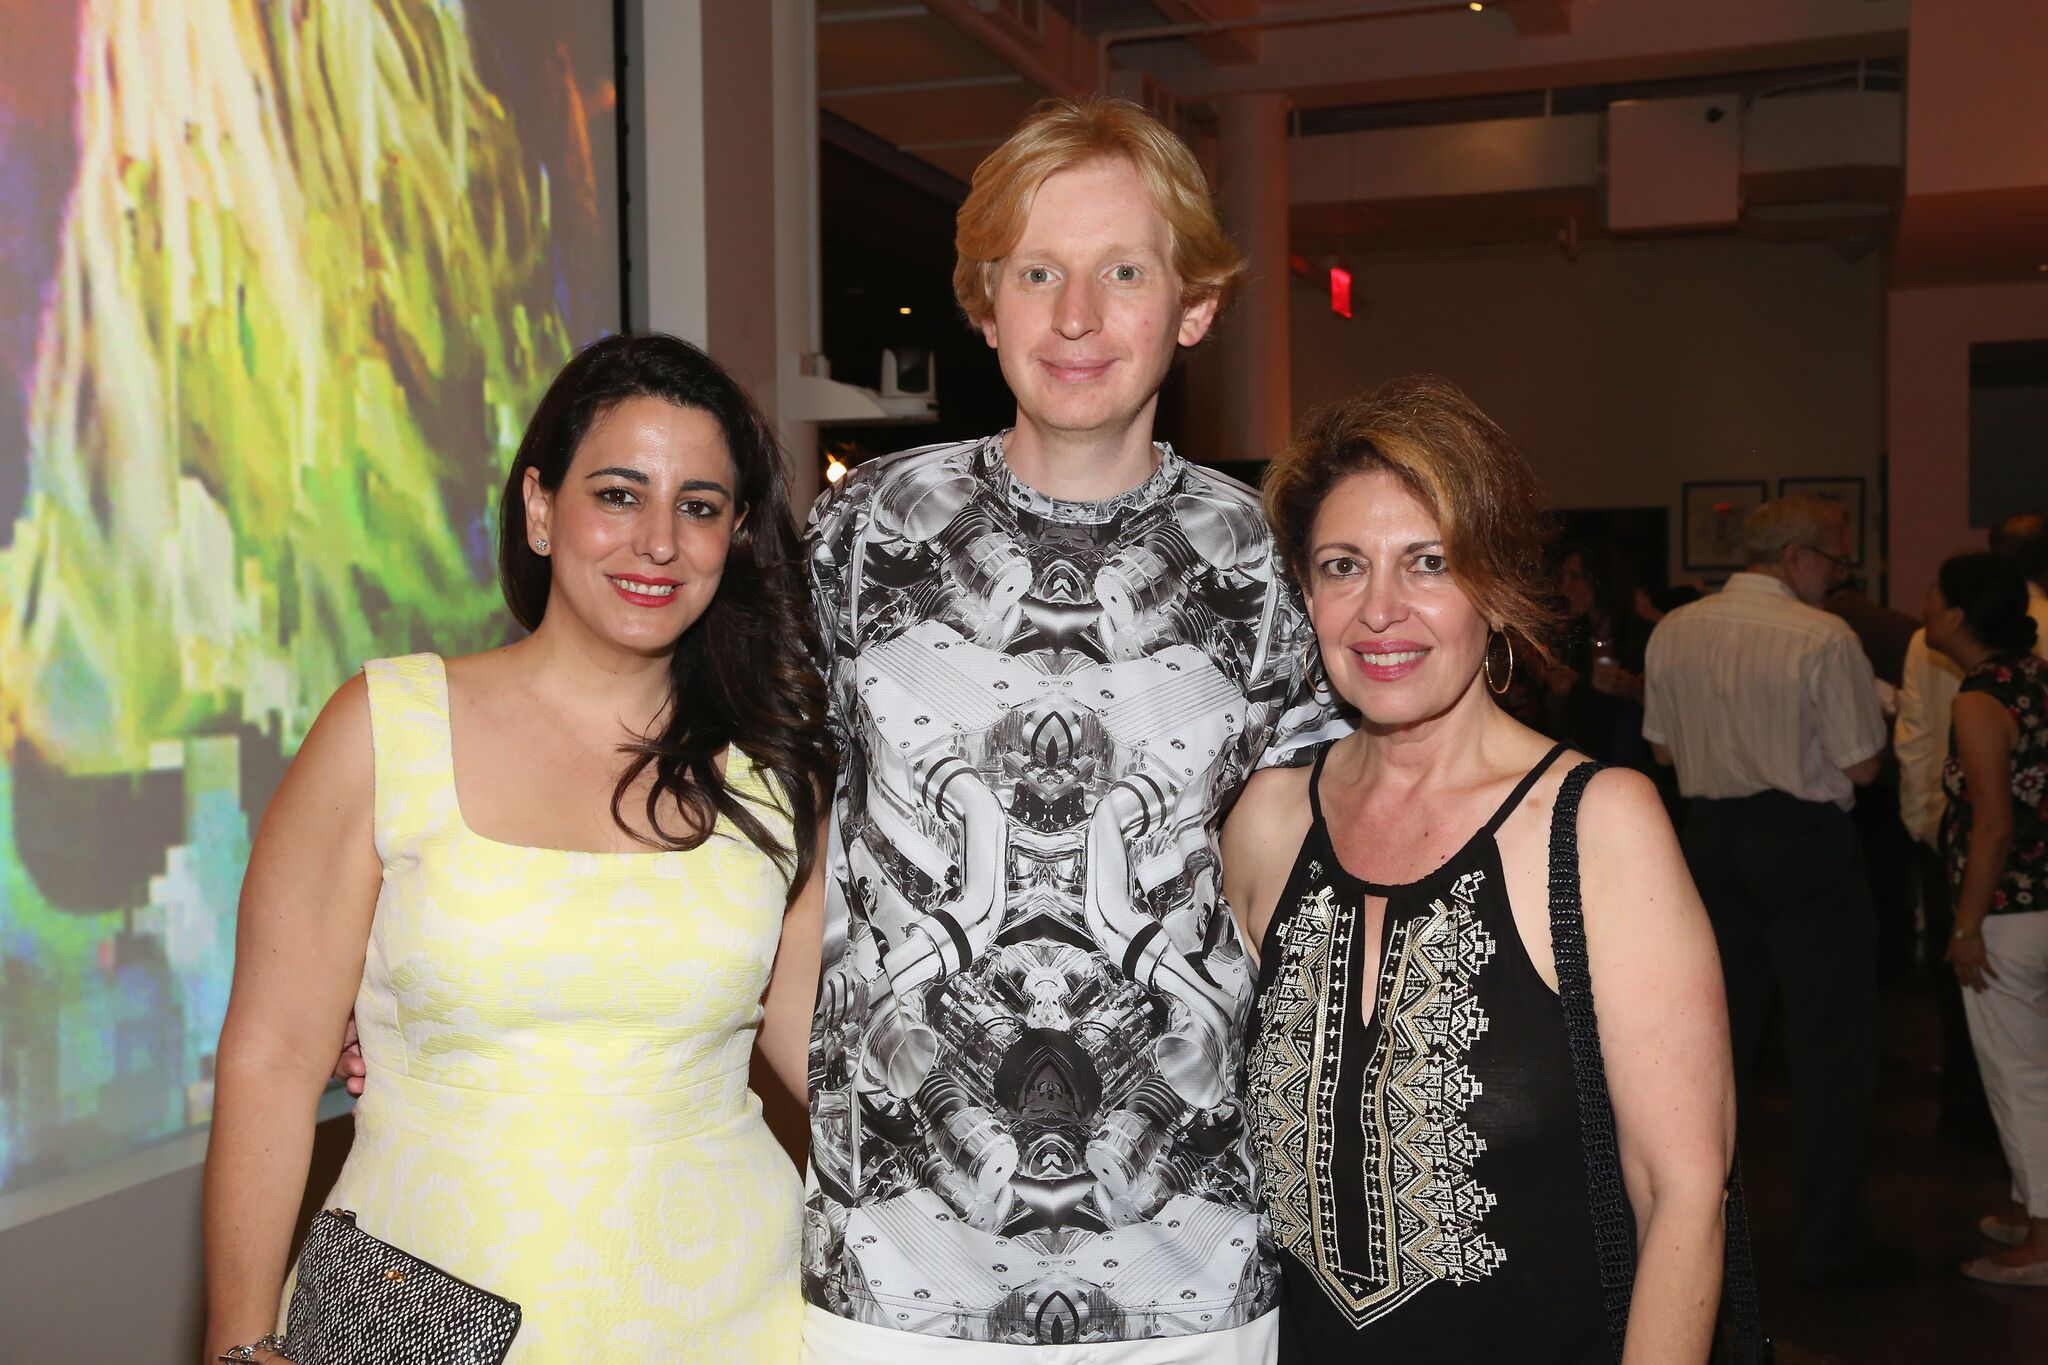 MvVO ART and Accessible Art Fair  Hosted  A Summer Soiree with New Partner Tumblr